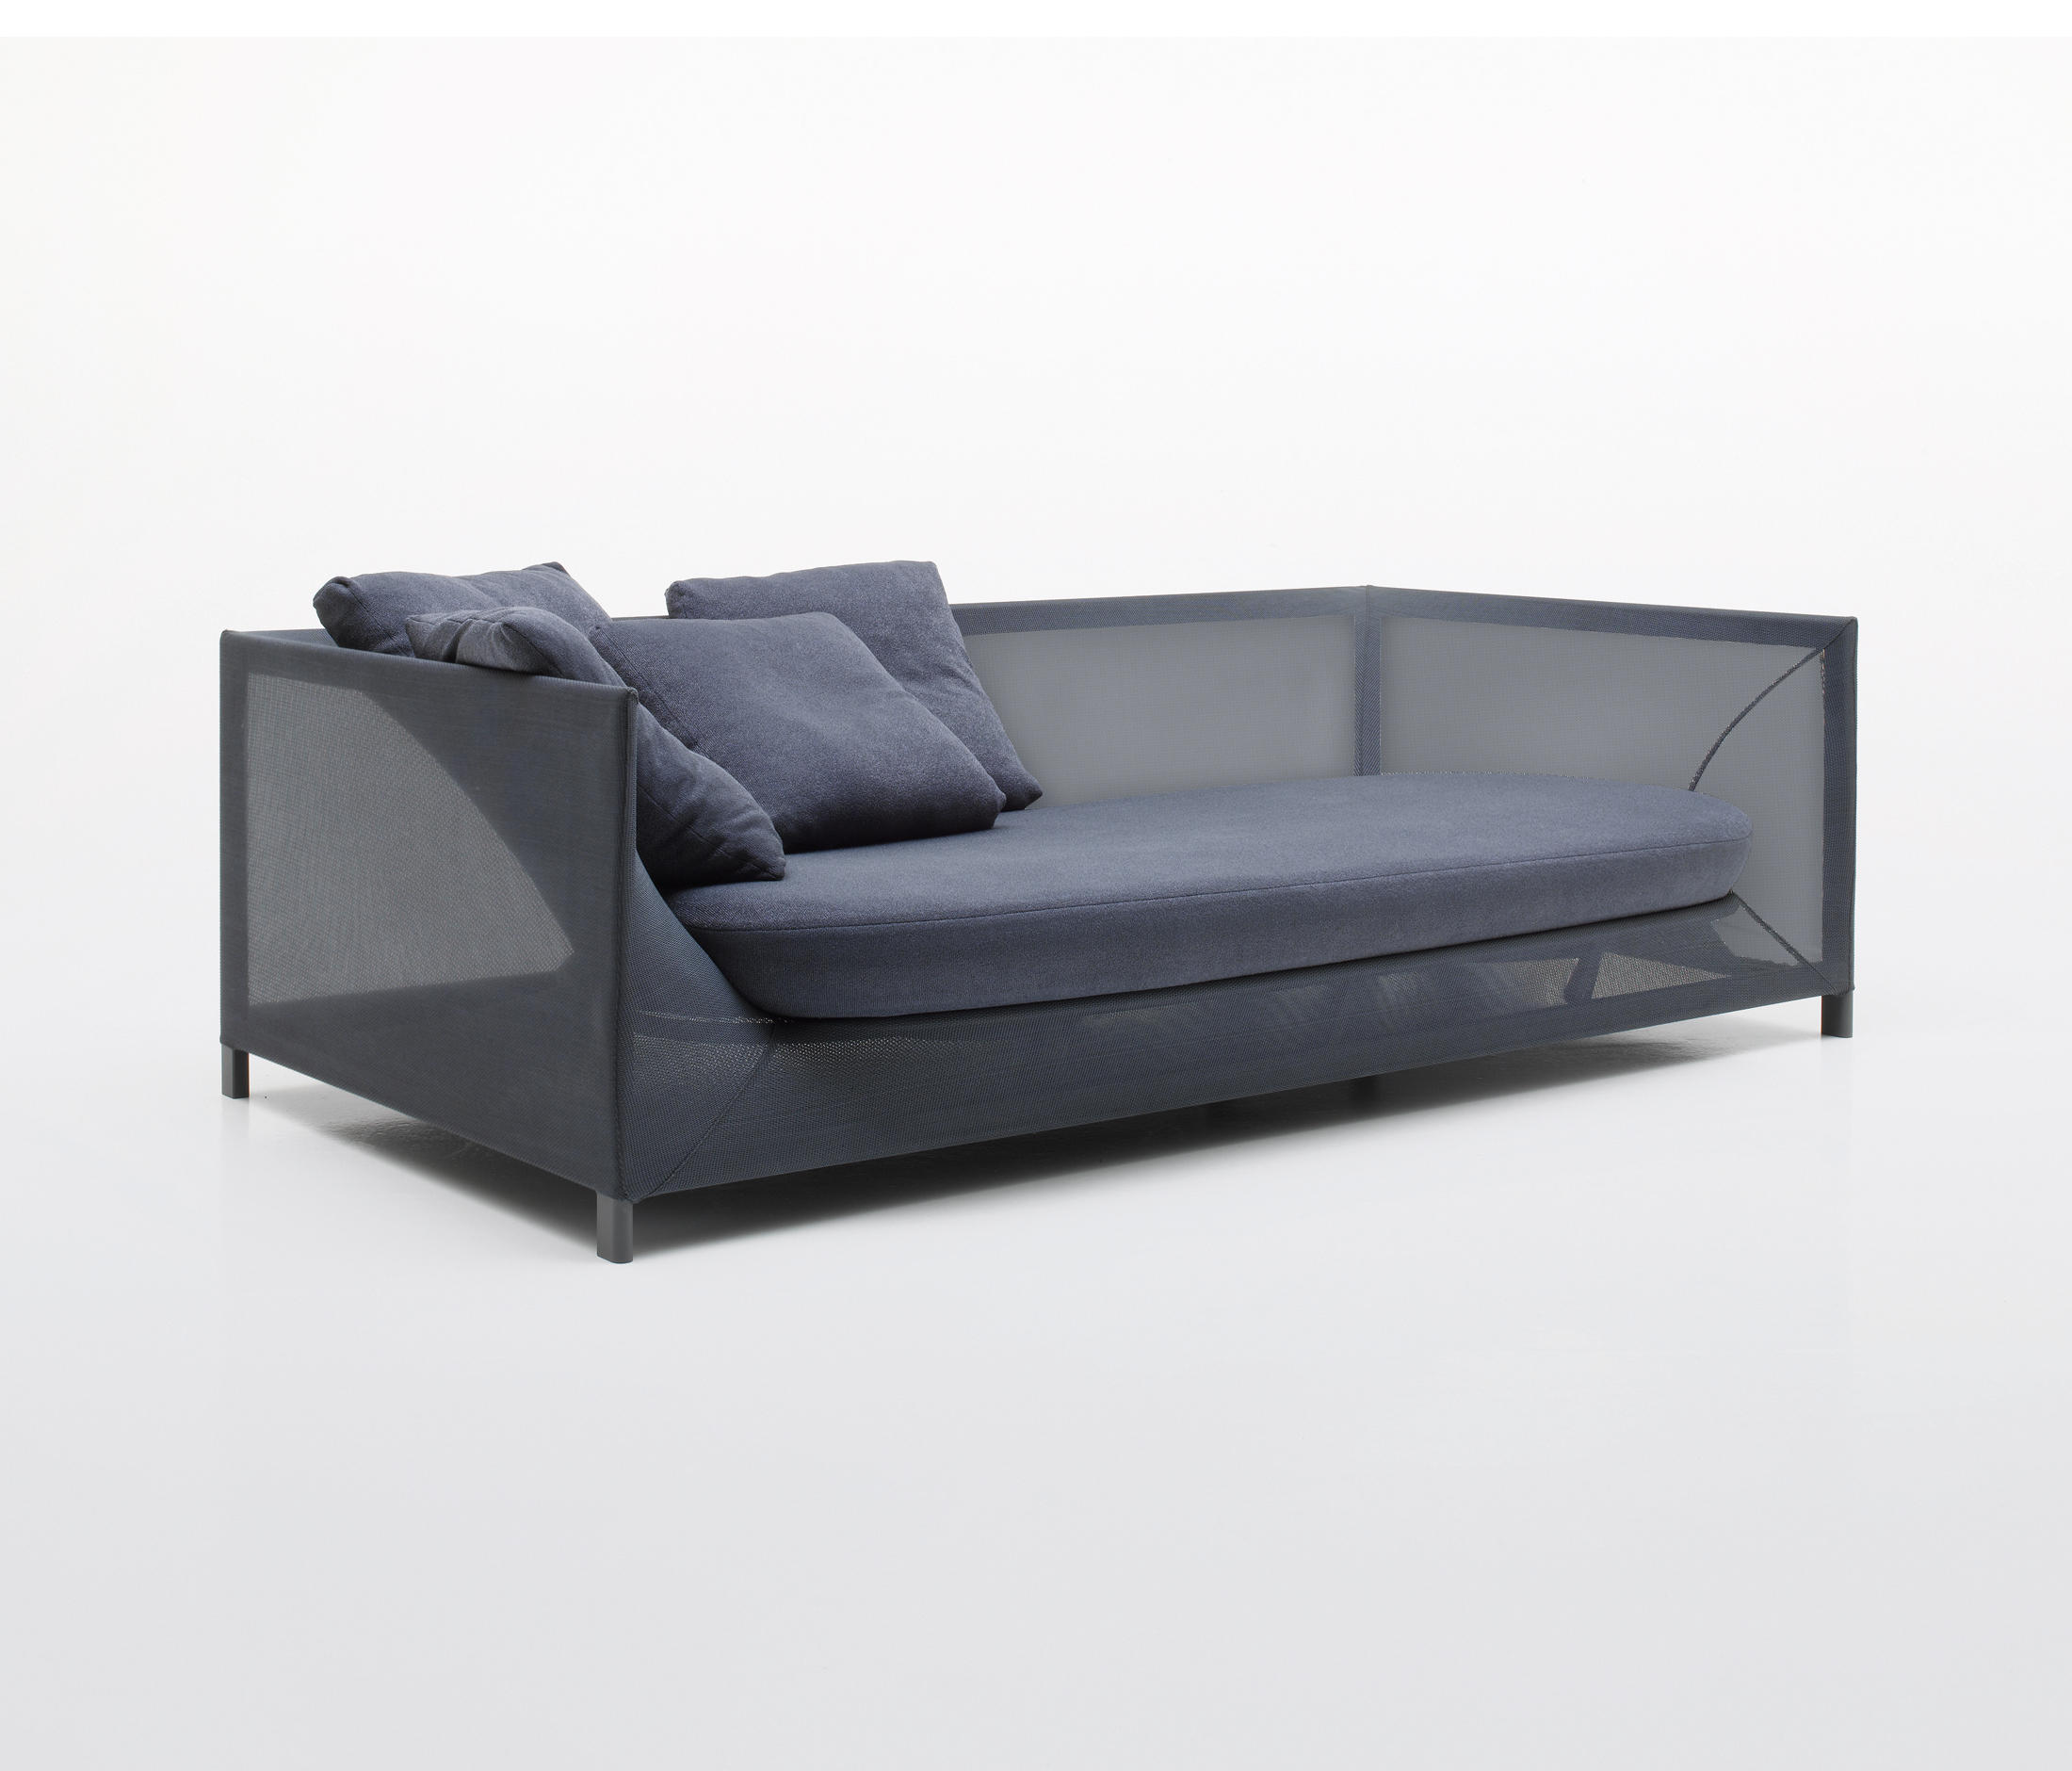 HAVEN - Sofas from Paola Lenti | Architonic